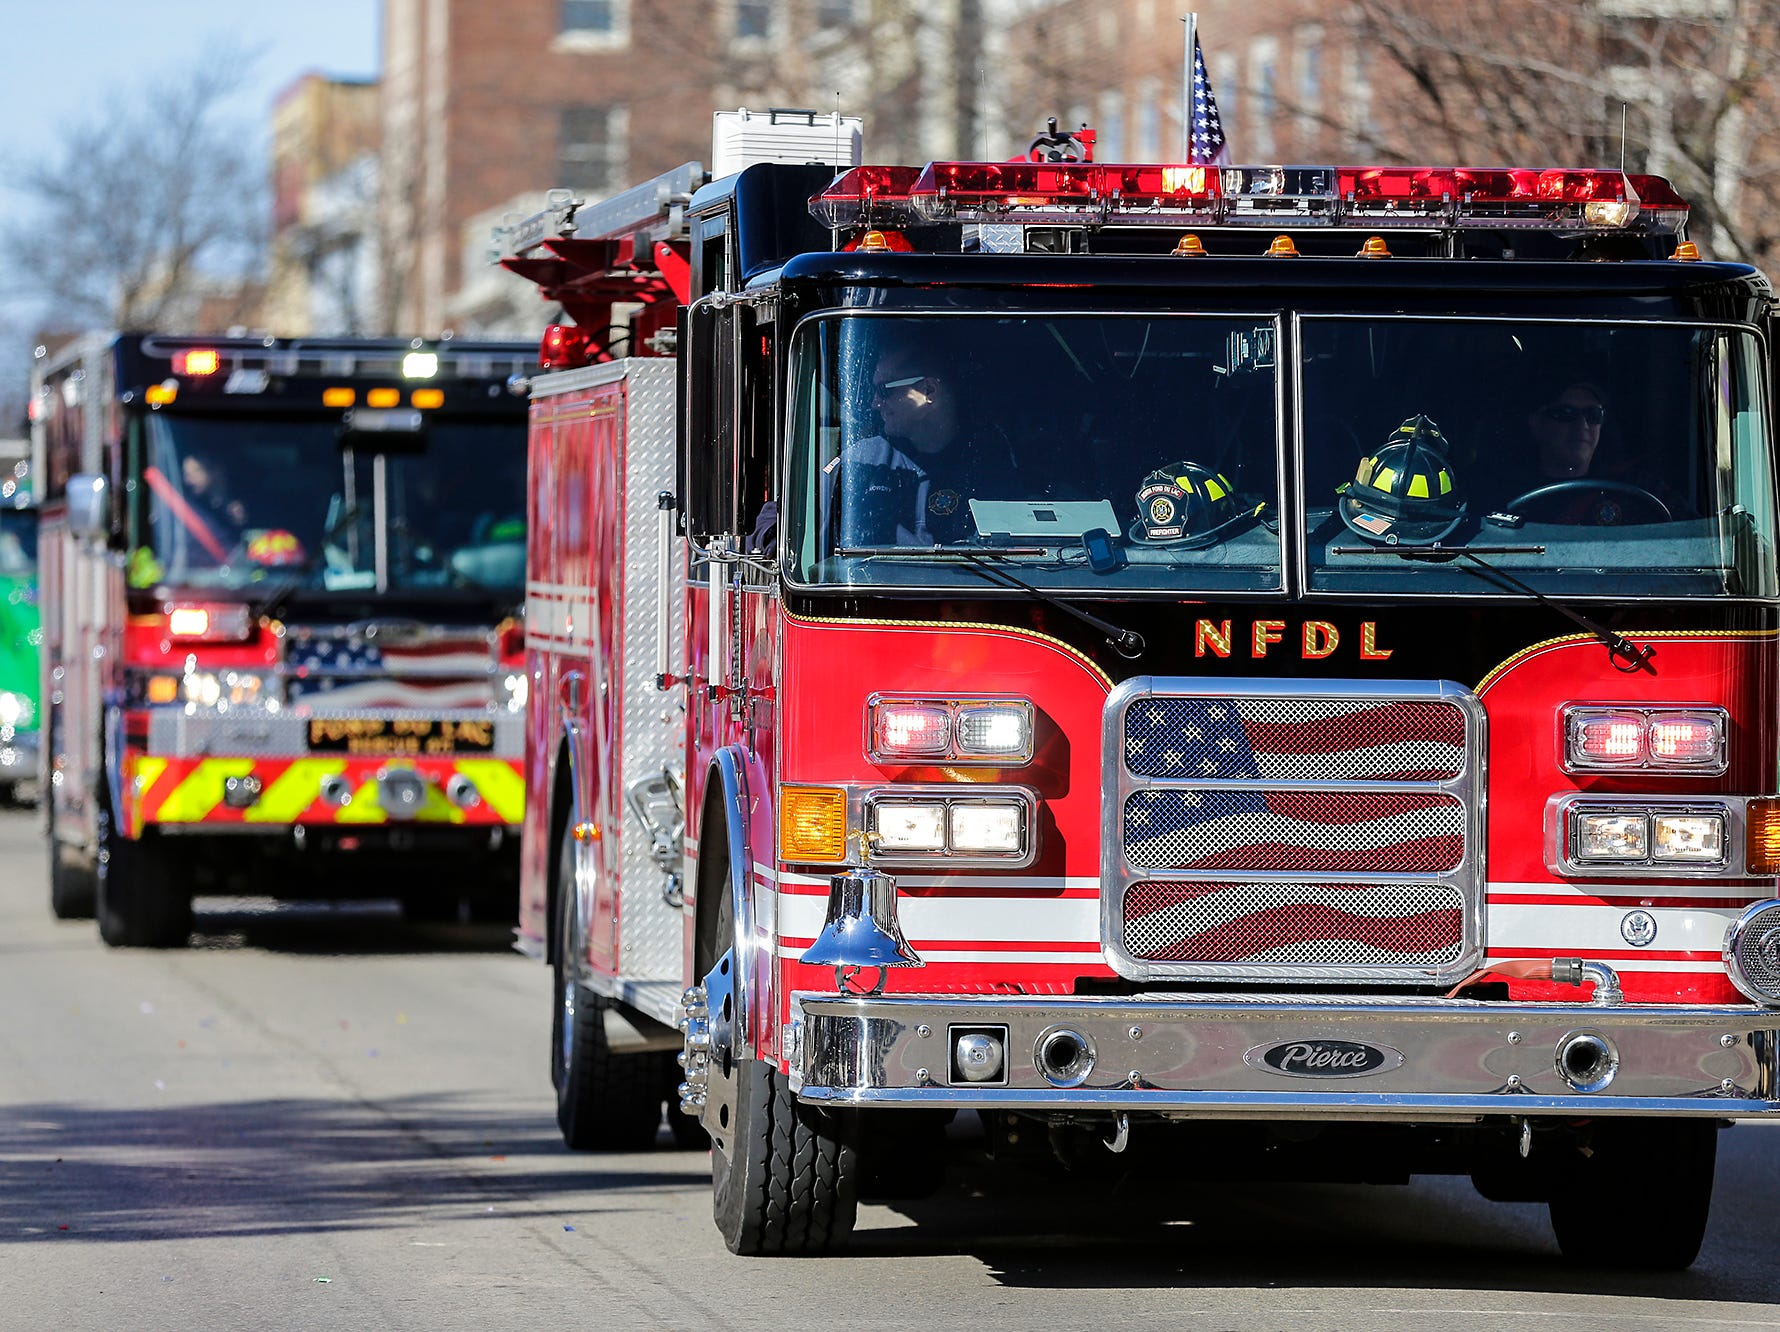 North Fond du Lac and Fond du Lac Fire Departments participated in the City of Fond du Lac St. Patrick's Day Parade Saturday, March 16, 2019 on Main Street in downtown Fond du Lac. Hundreds of people lined the street to watch over 50 parade participants. Doug Raflik/USA TODAY NETWORK-Wisconsin